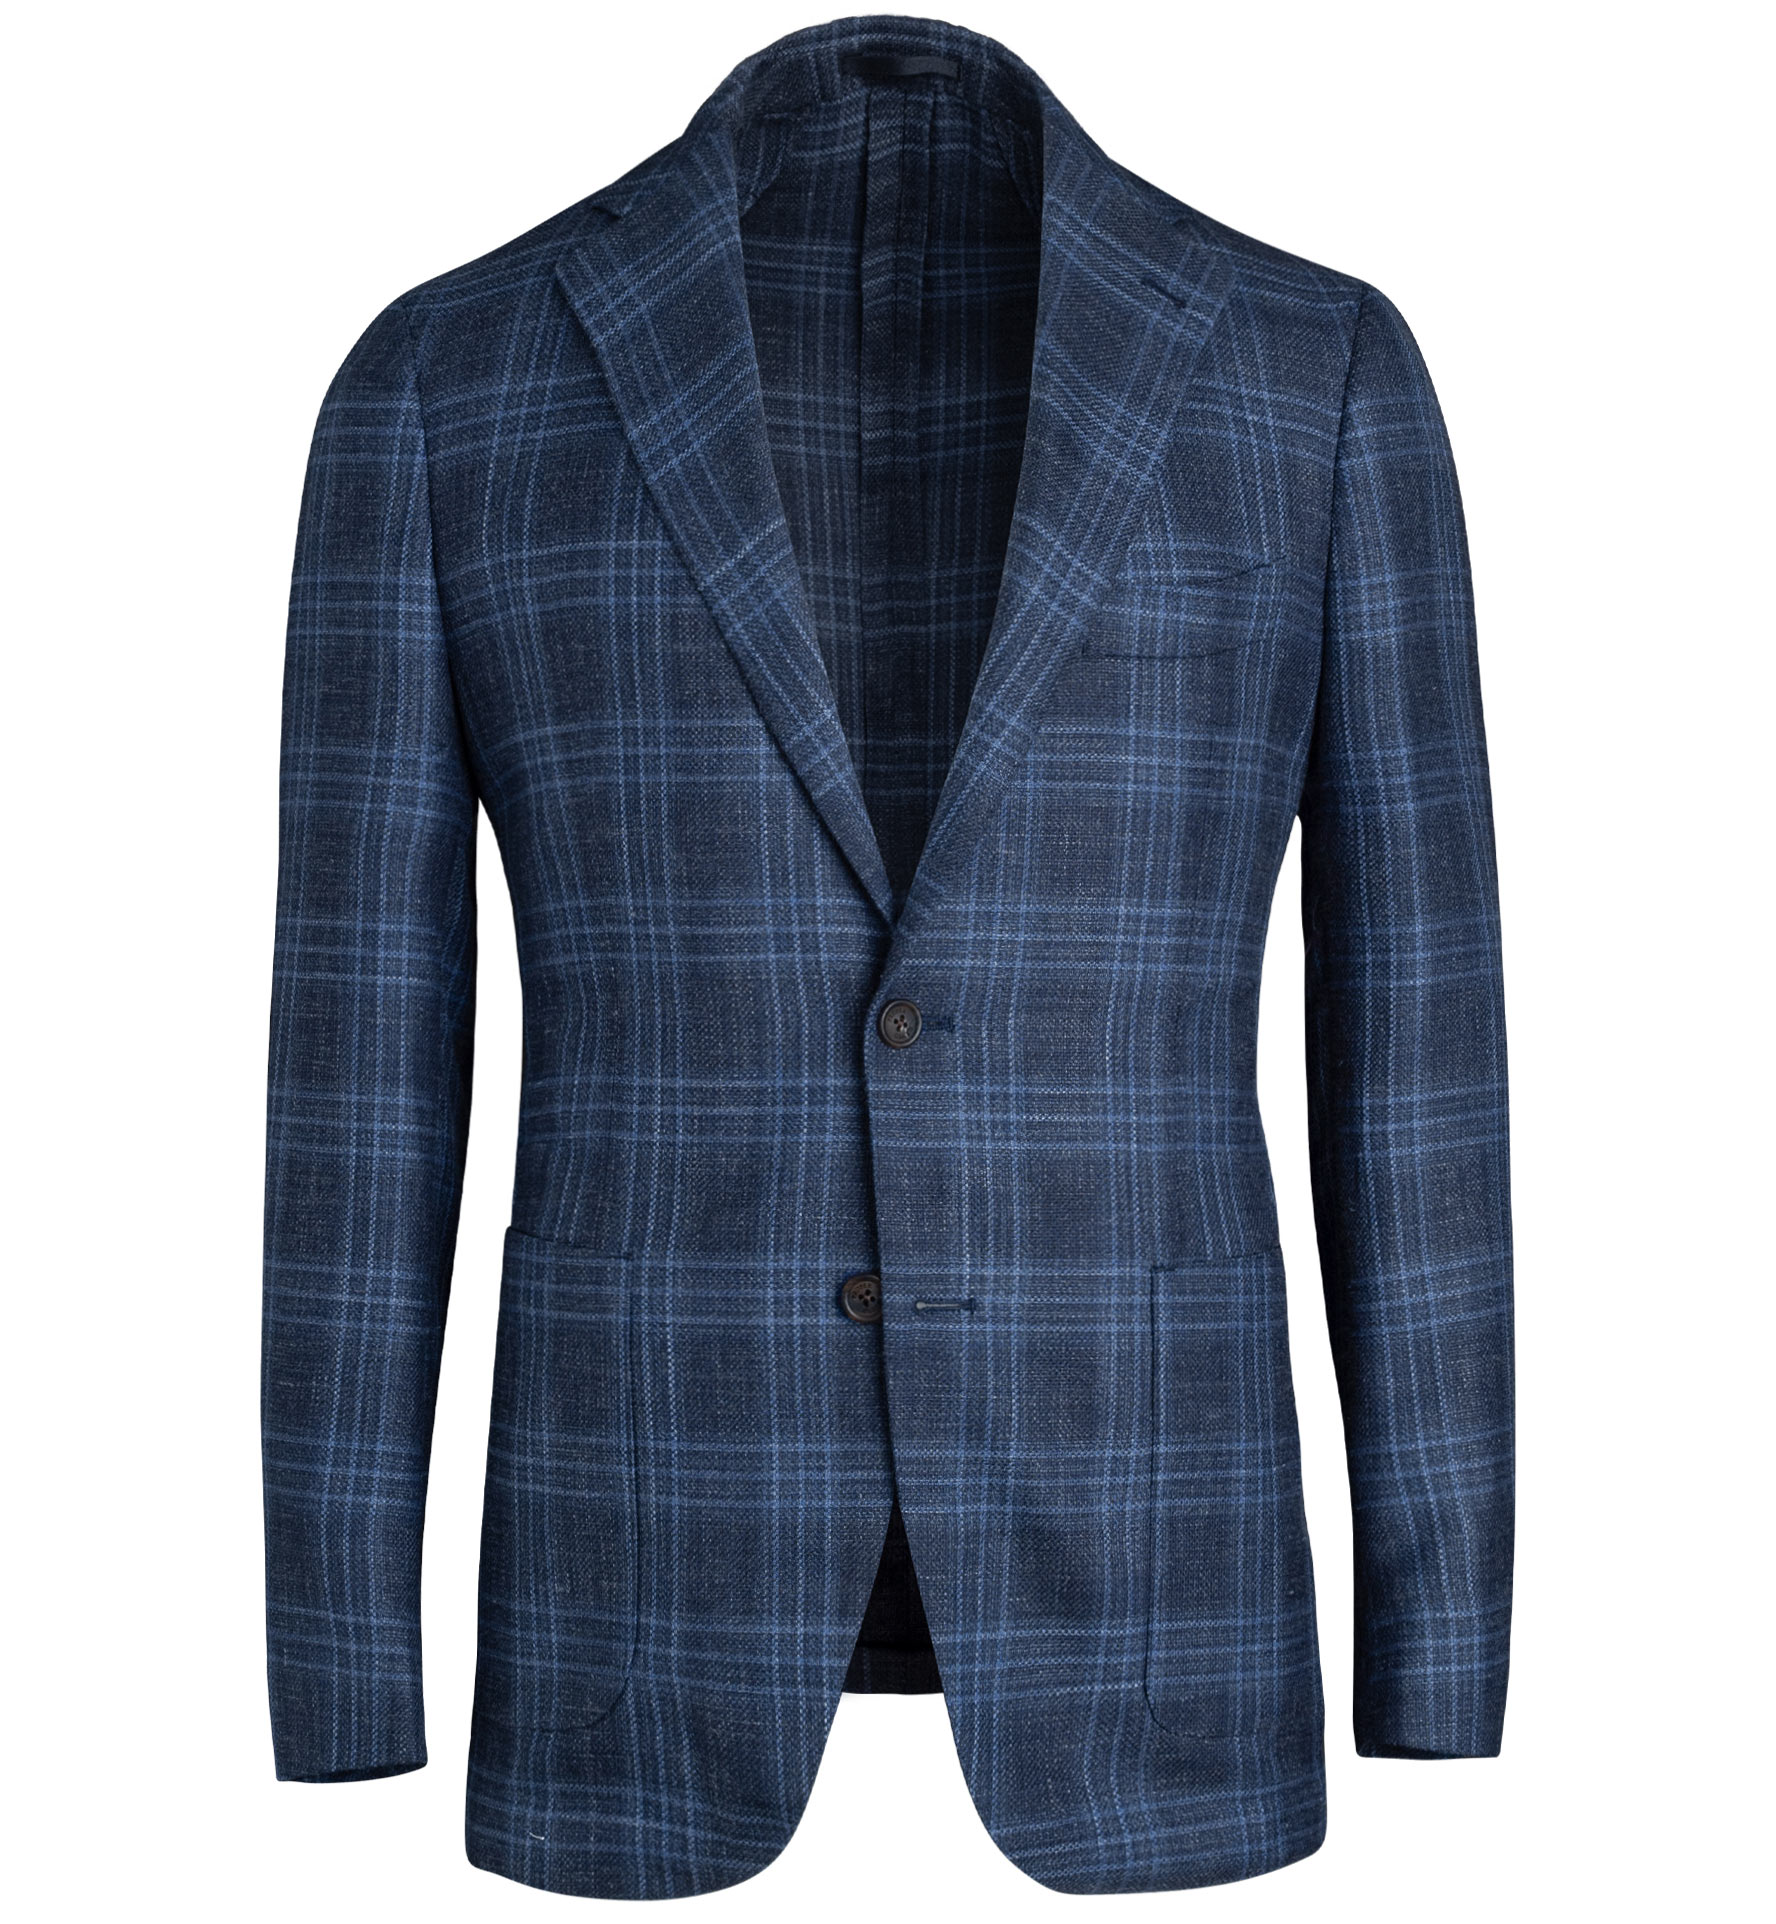 Zoom Image of Bedford Navy Plaid Wool Silk and Linen Hopsack Jacket